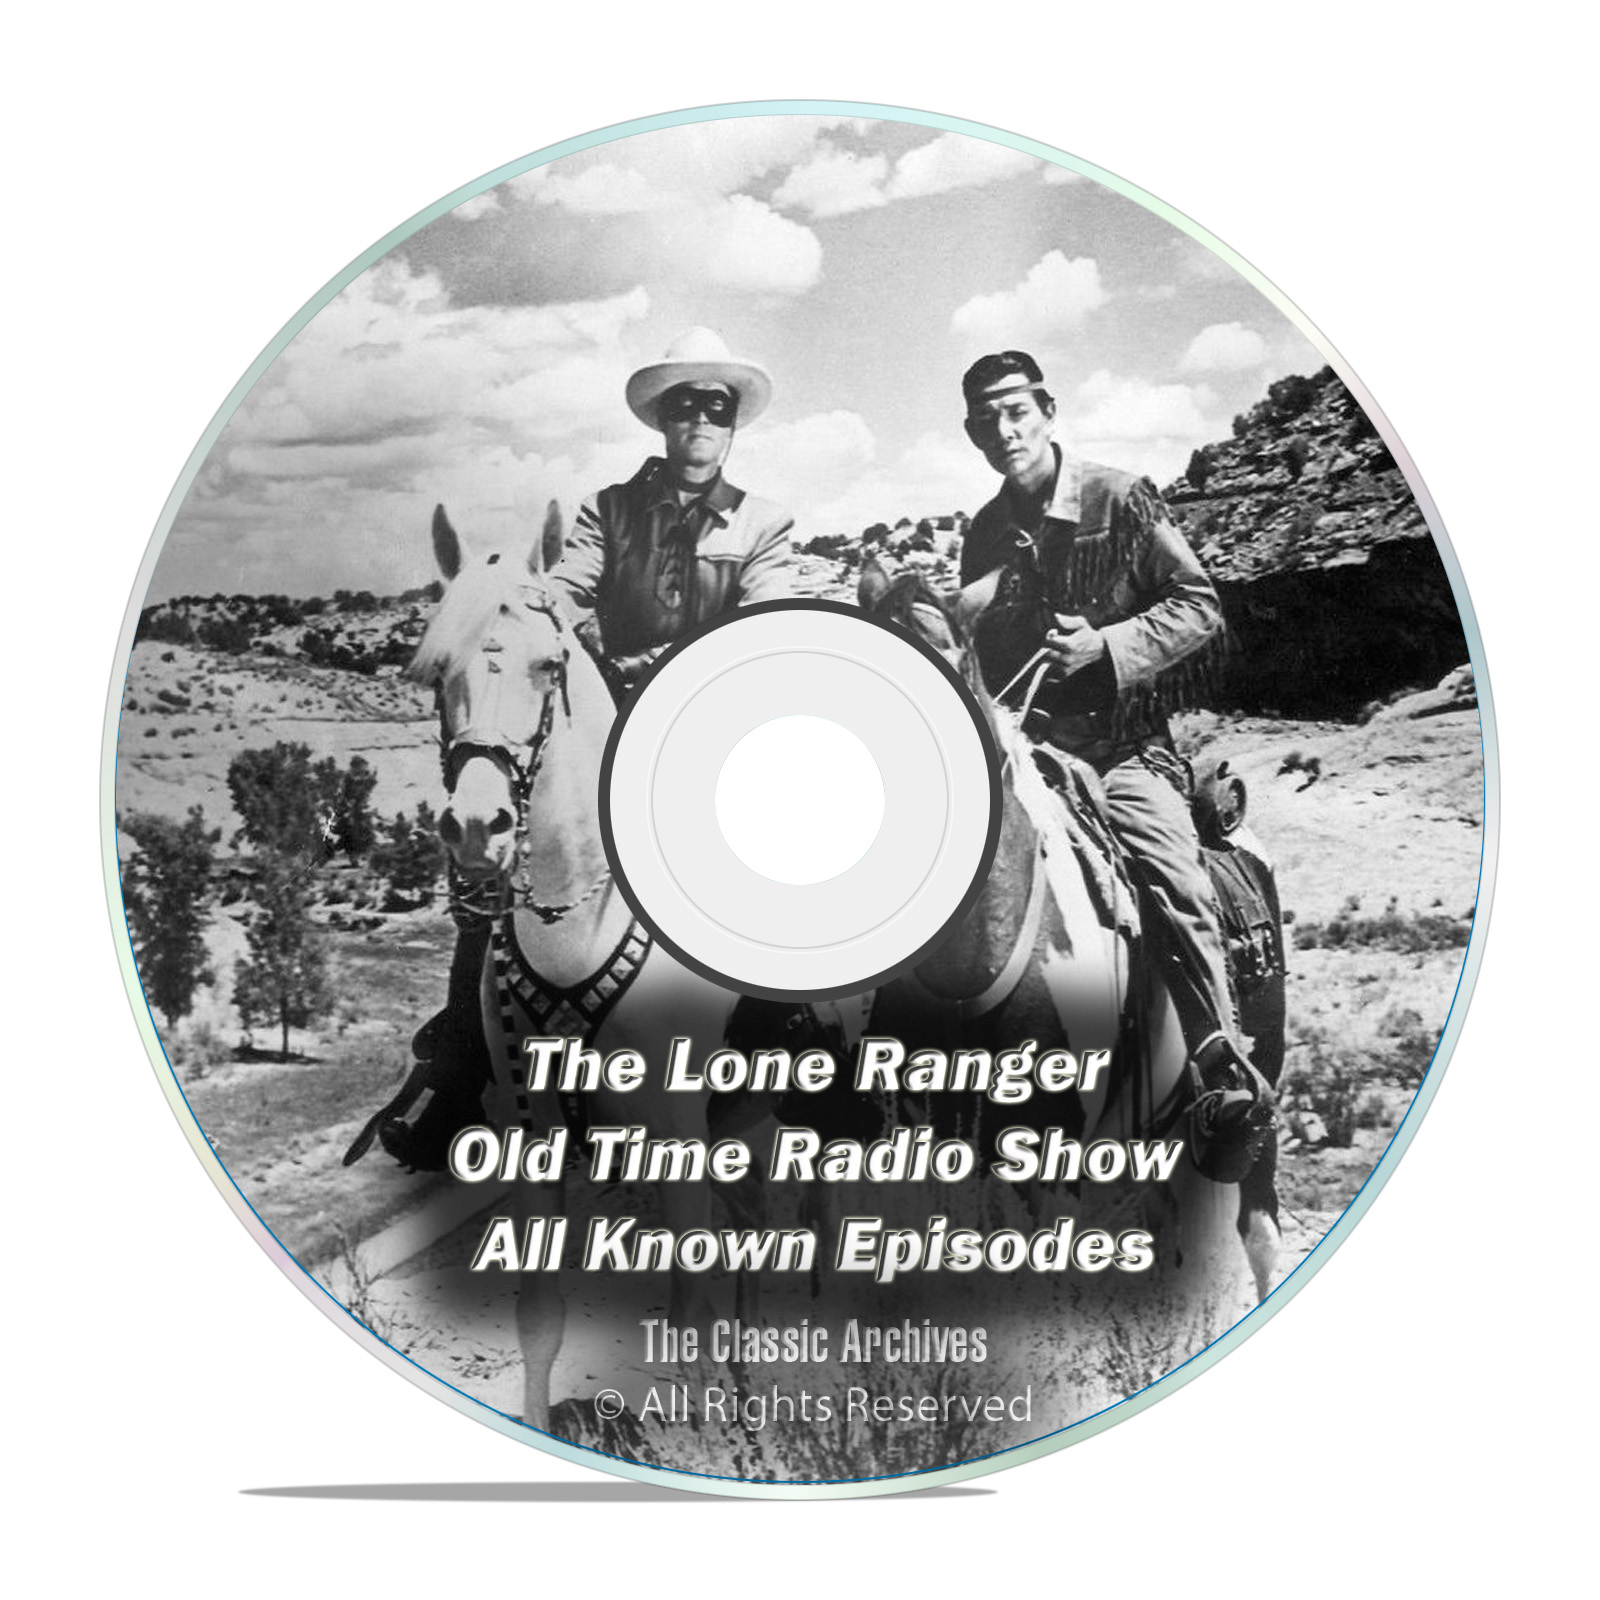 The Lone Ranger, 2,357 Shows, Complete Set, Old Time Radio MP3 2 DVD SET